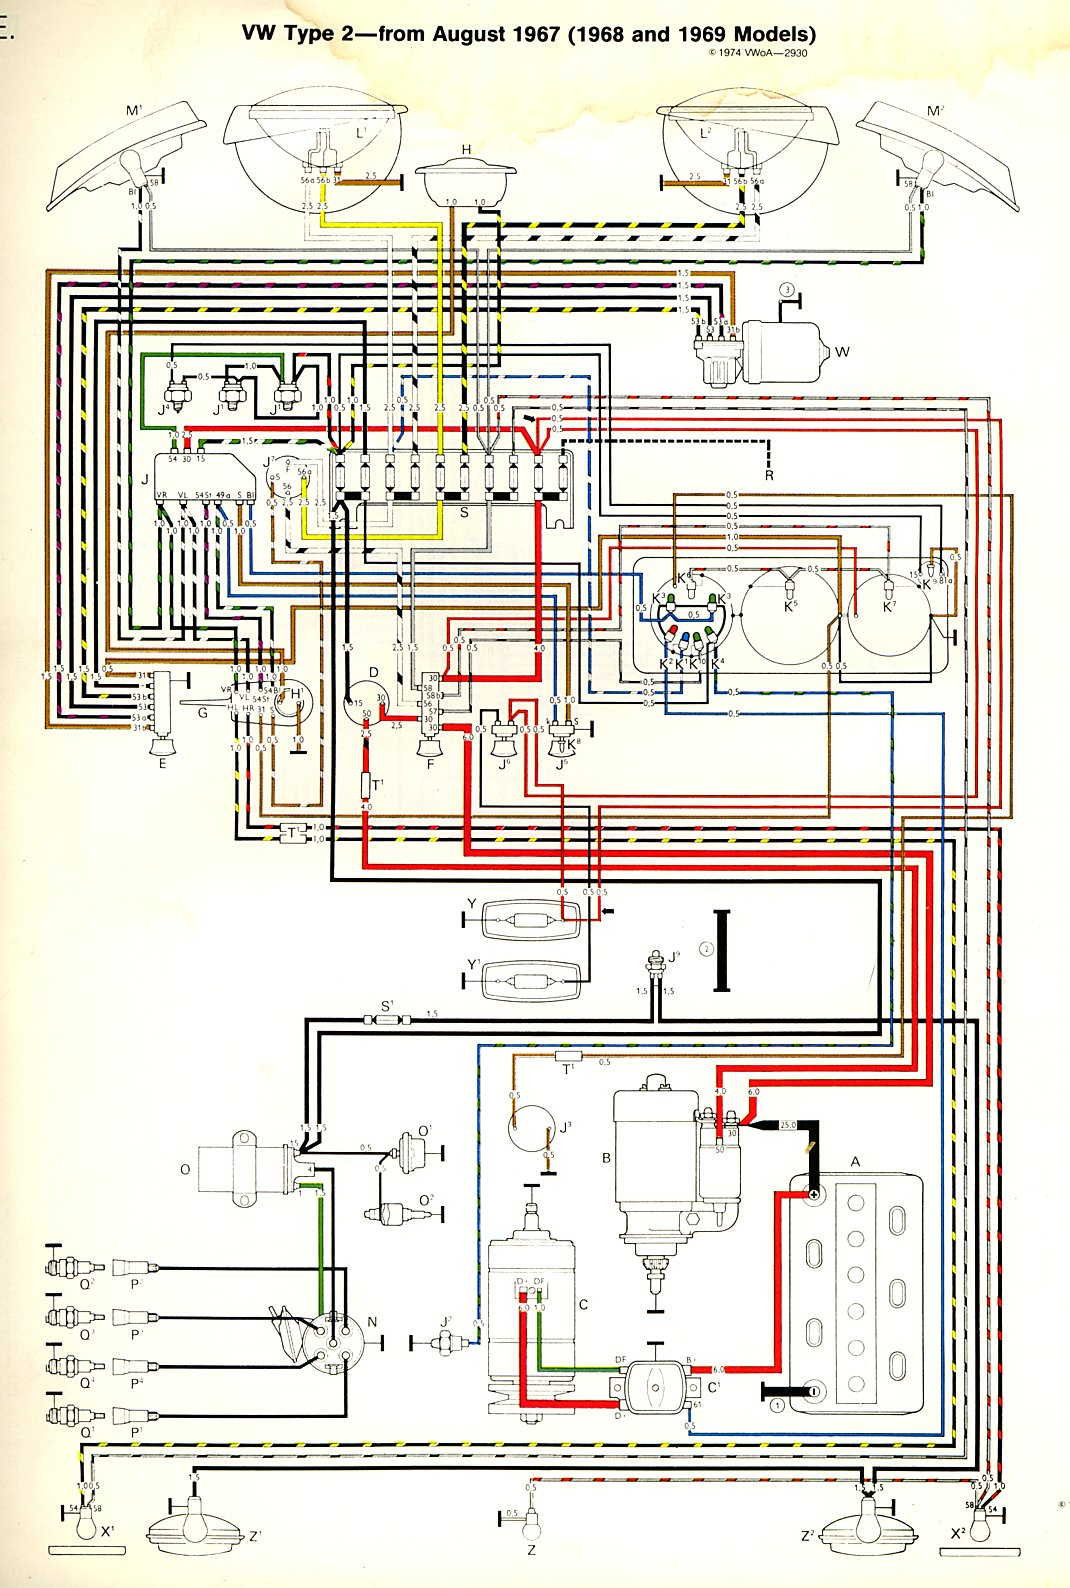 baybus_6869a bus wiring diagram vw wiring harness diagram \u2022 wiring diagrams j vw type 3 wiring harness at cos-gaming.co